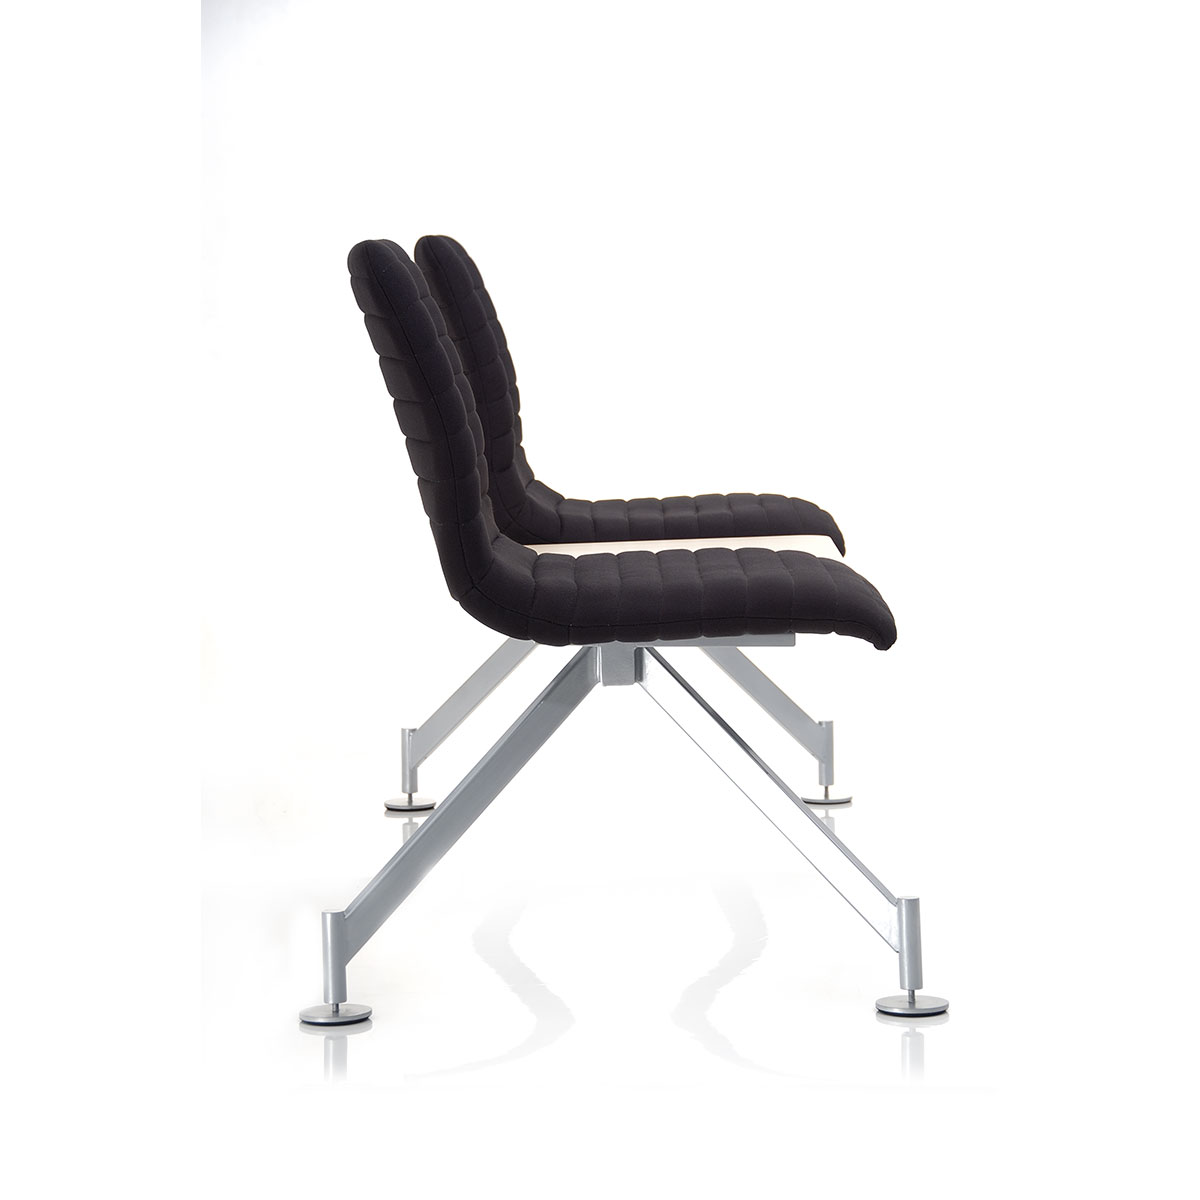 ergonomic chair jakarta hickory beds linea bequem kreasindo pratama office furniture indonesia